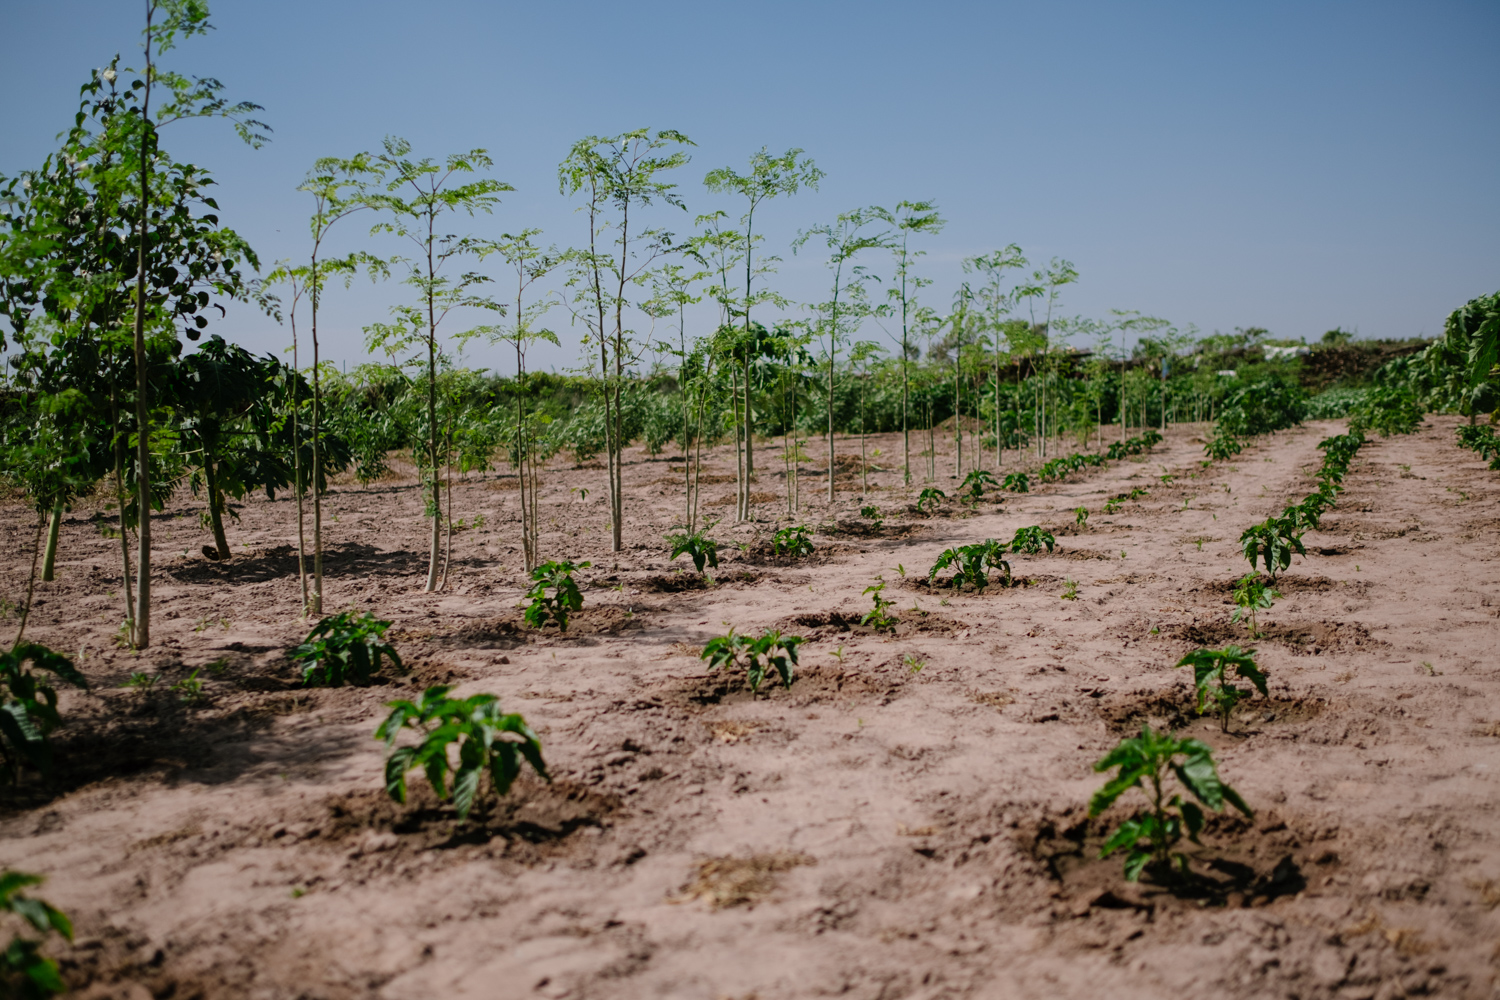 Senegal-Ecosia-Forest-Garden-Agroforestry-trees-climate-change--7-of-103-